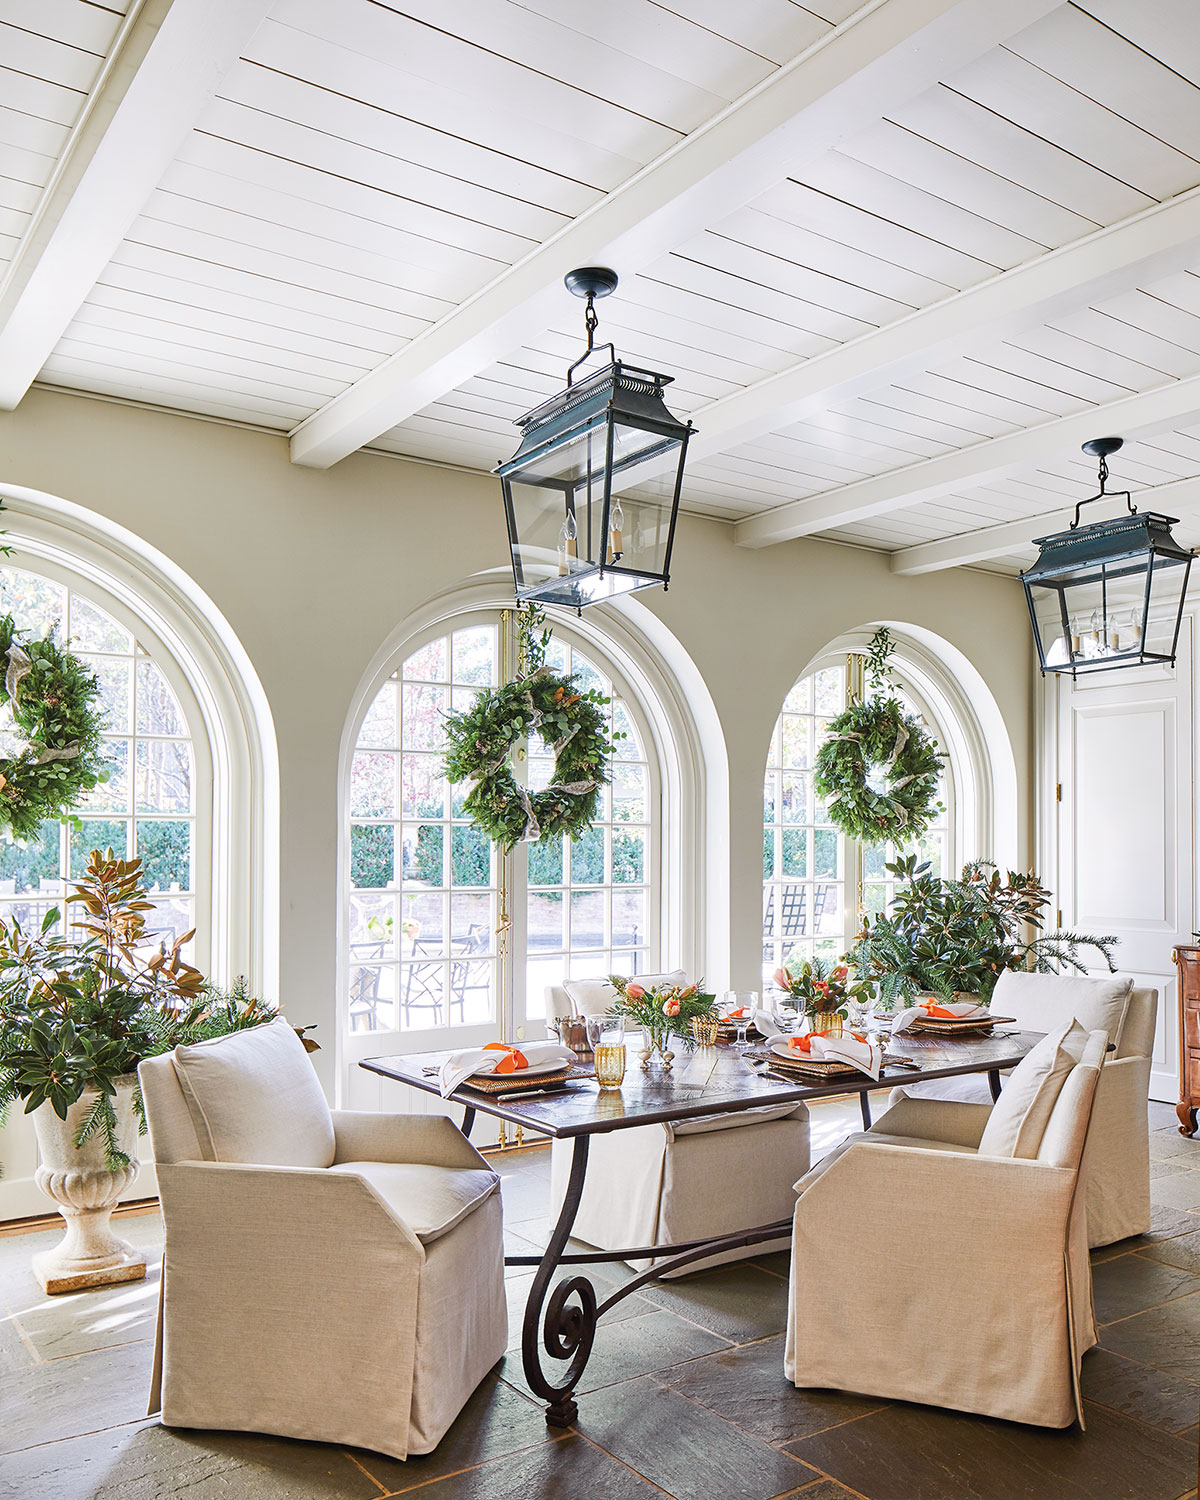 The light and airy garden room features a painted wood ceiling with exposed beams, three sets of arched French doors, and a natural wood dining table with a scrolled metal base, surrounded by natural linen slip-covered chairs. Two large black lanterns provide lighting.